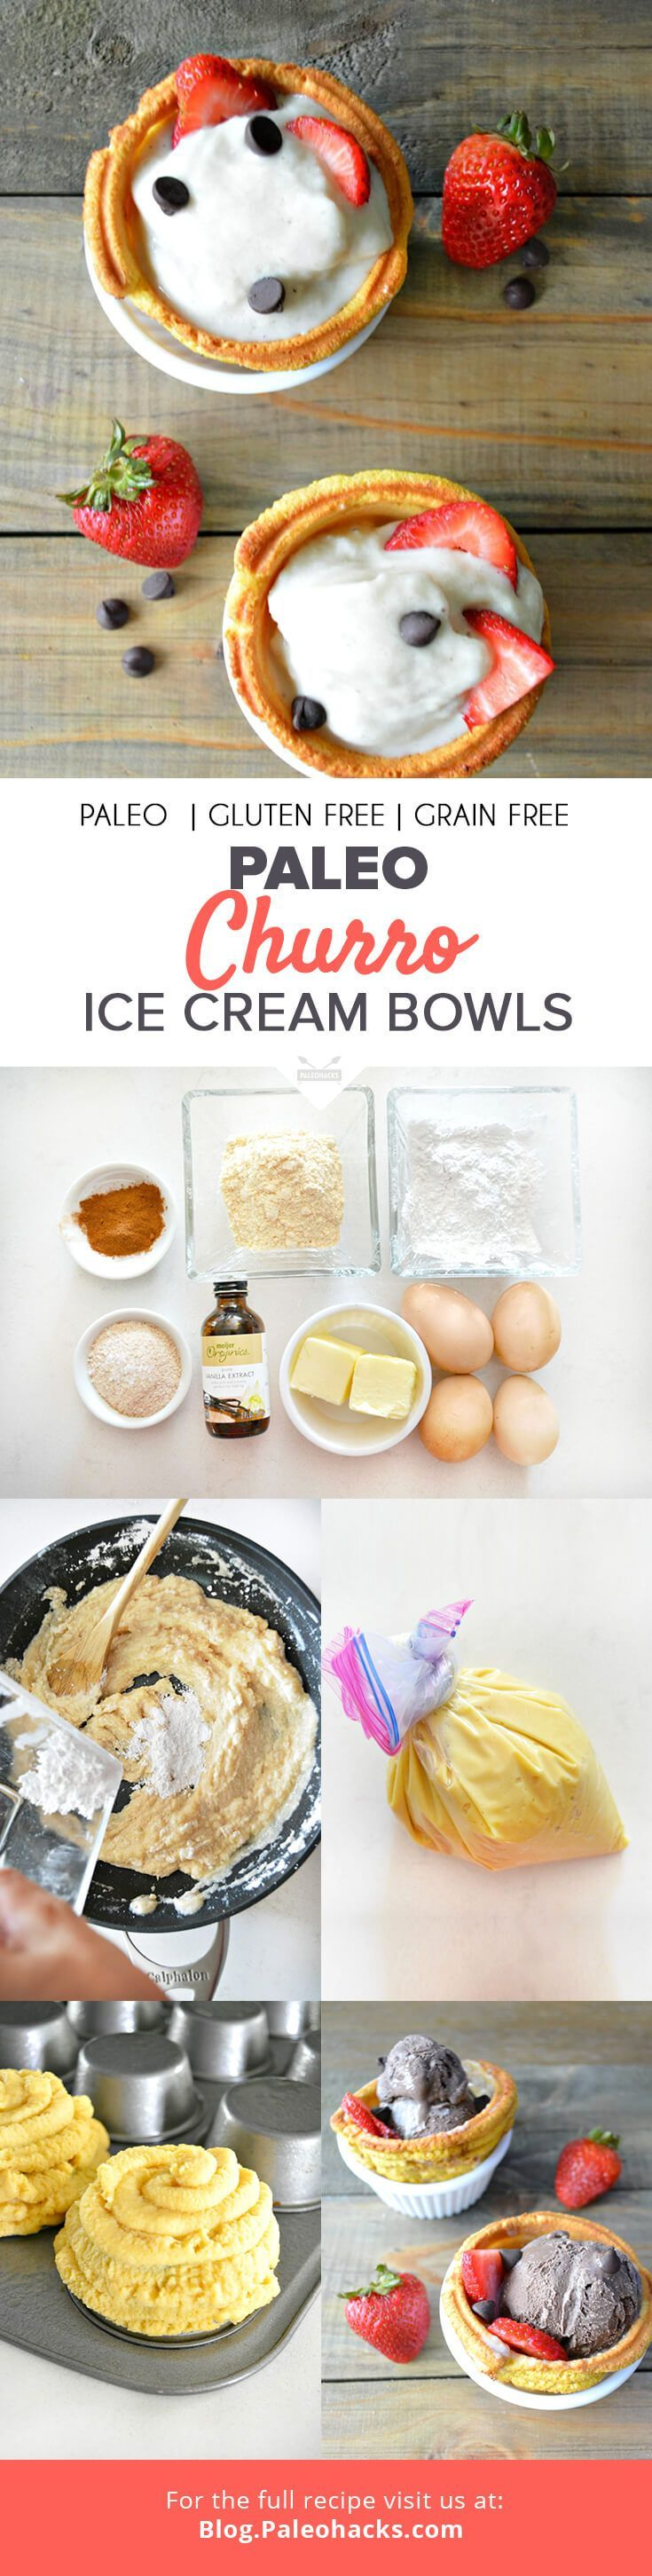 The best of both worlds — ice cream served in an edible churro bowl. Paleo ingredients reinvent this classic dessert in a guilt-free way. Summer just got a whole lot sweeter. For the full recipe visit us here: http://paleo.co/churrobowls